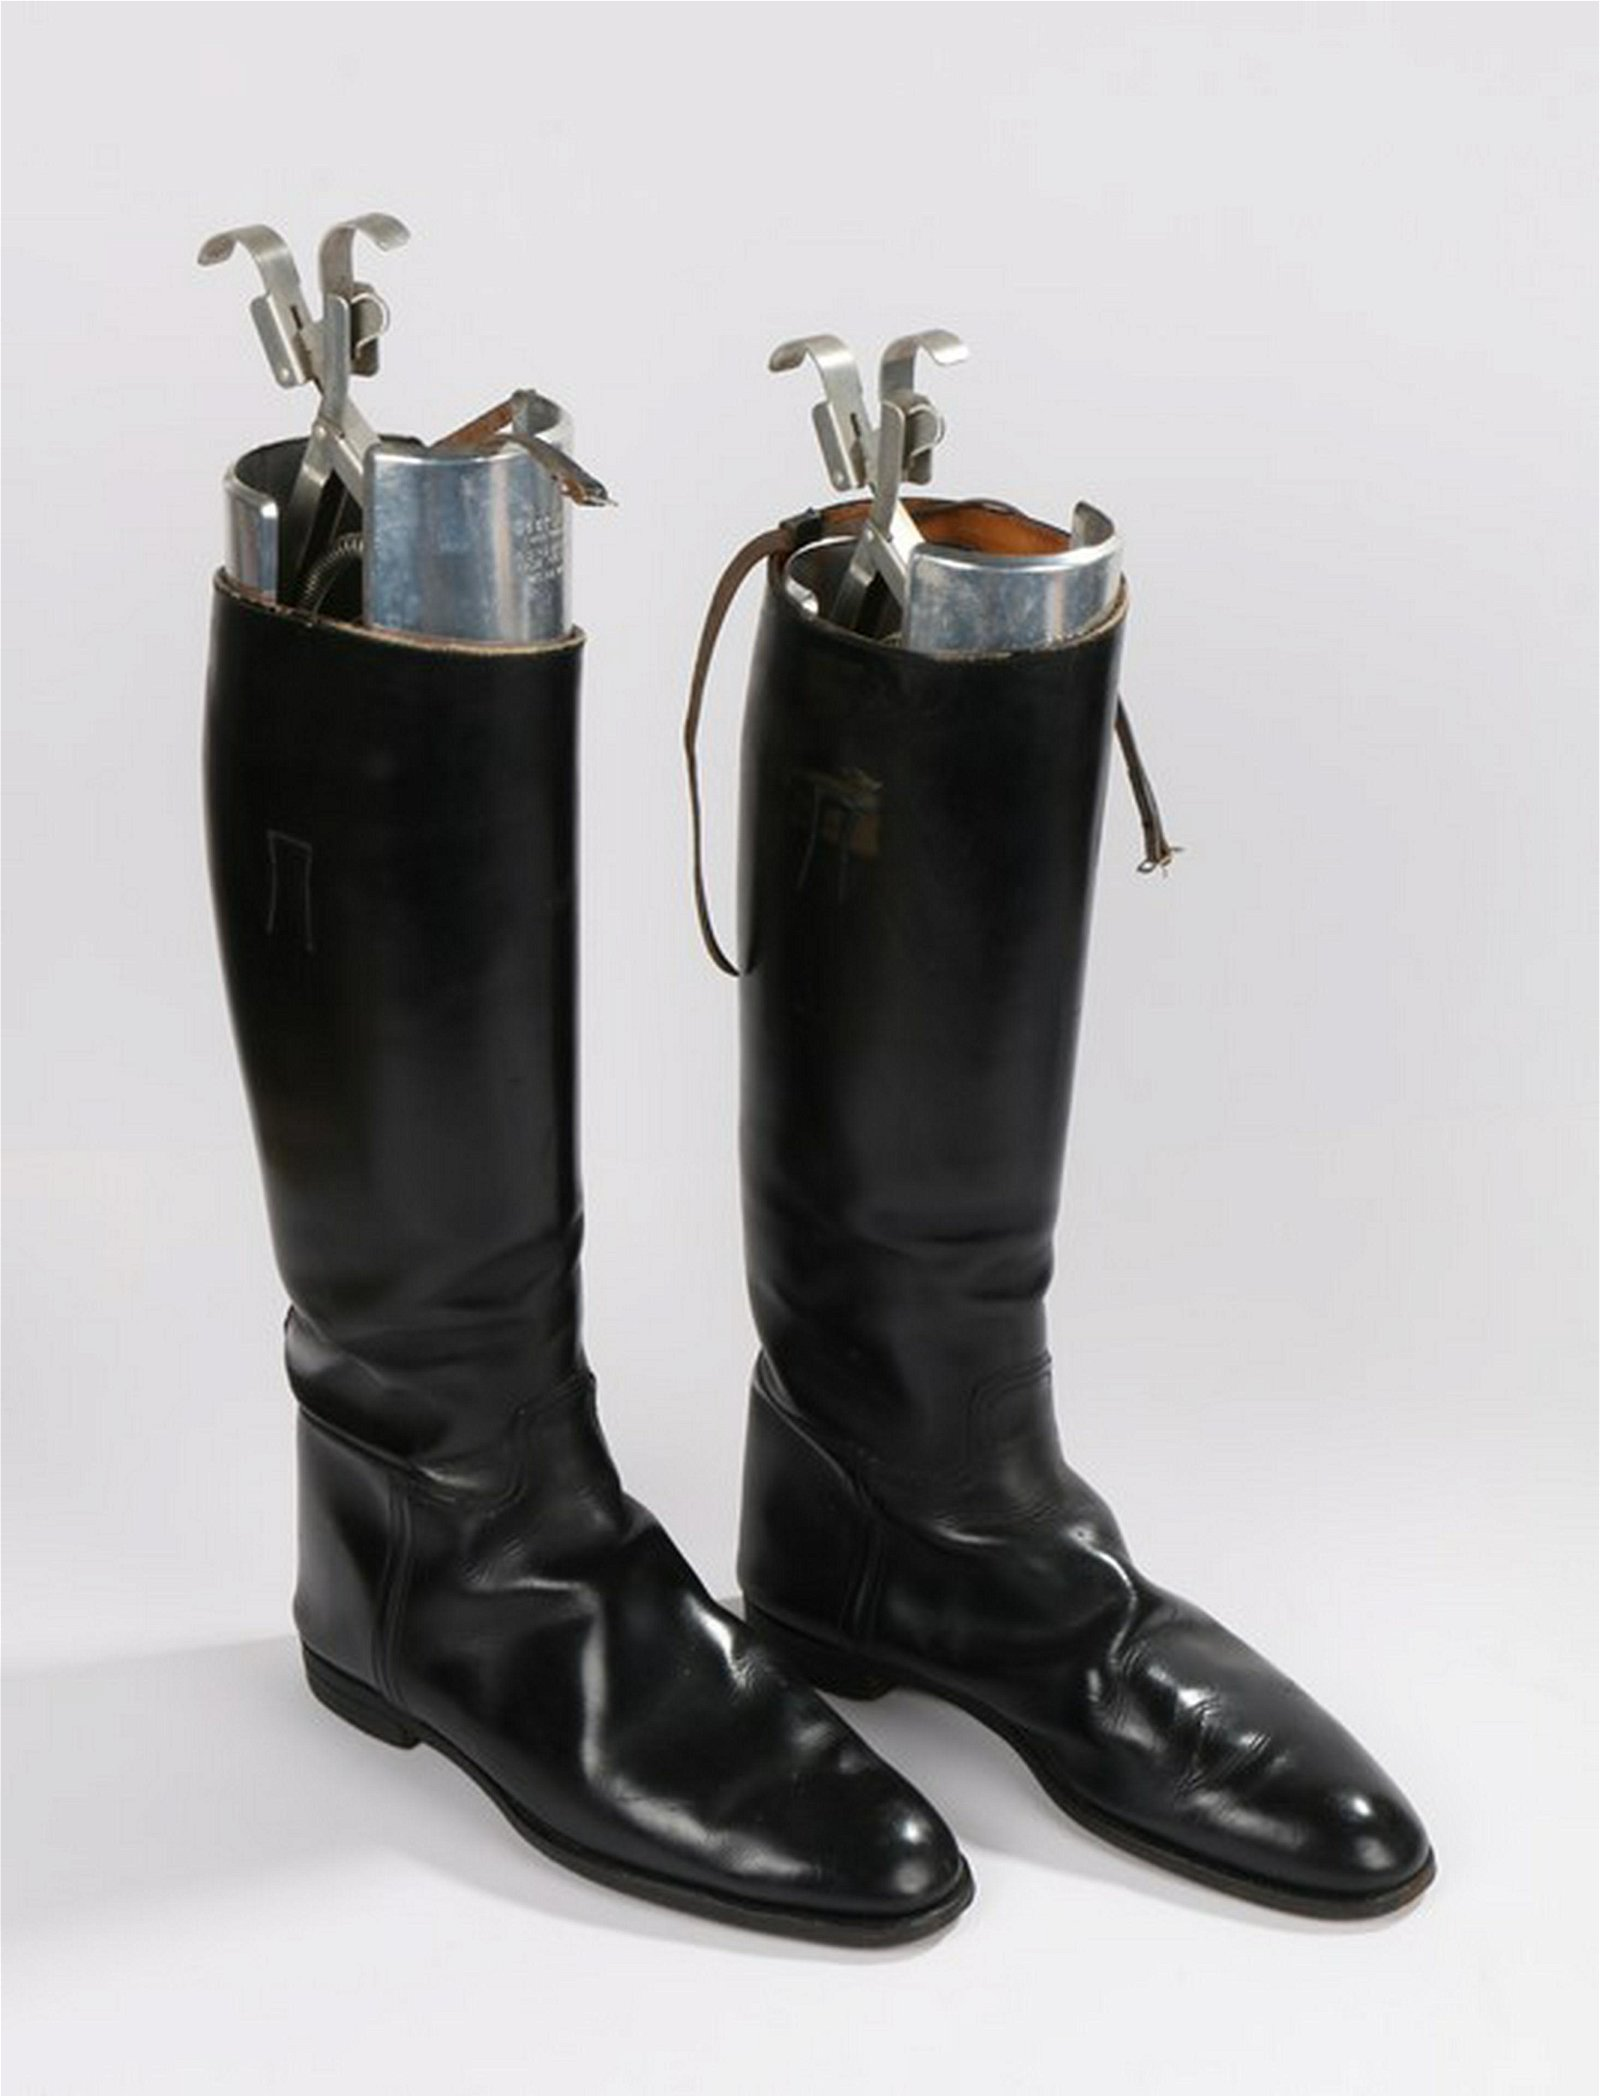 Pair of leather riding boots, in black leather,